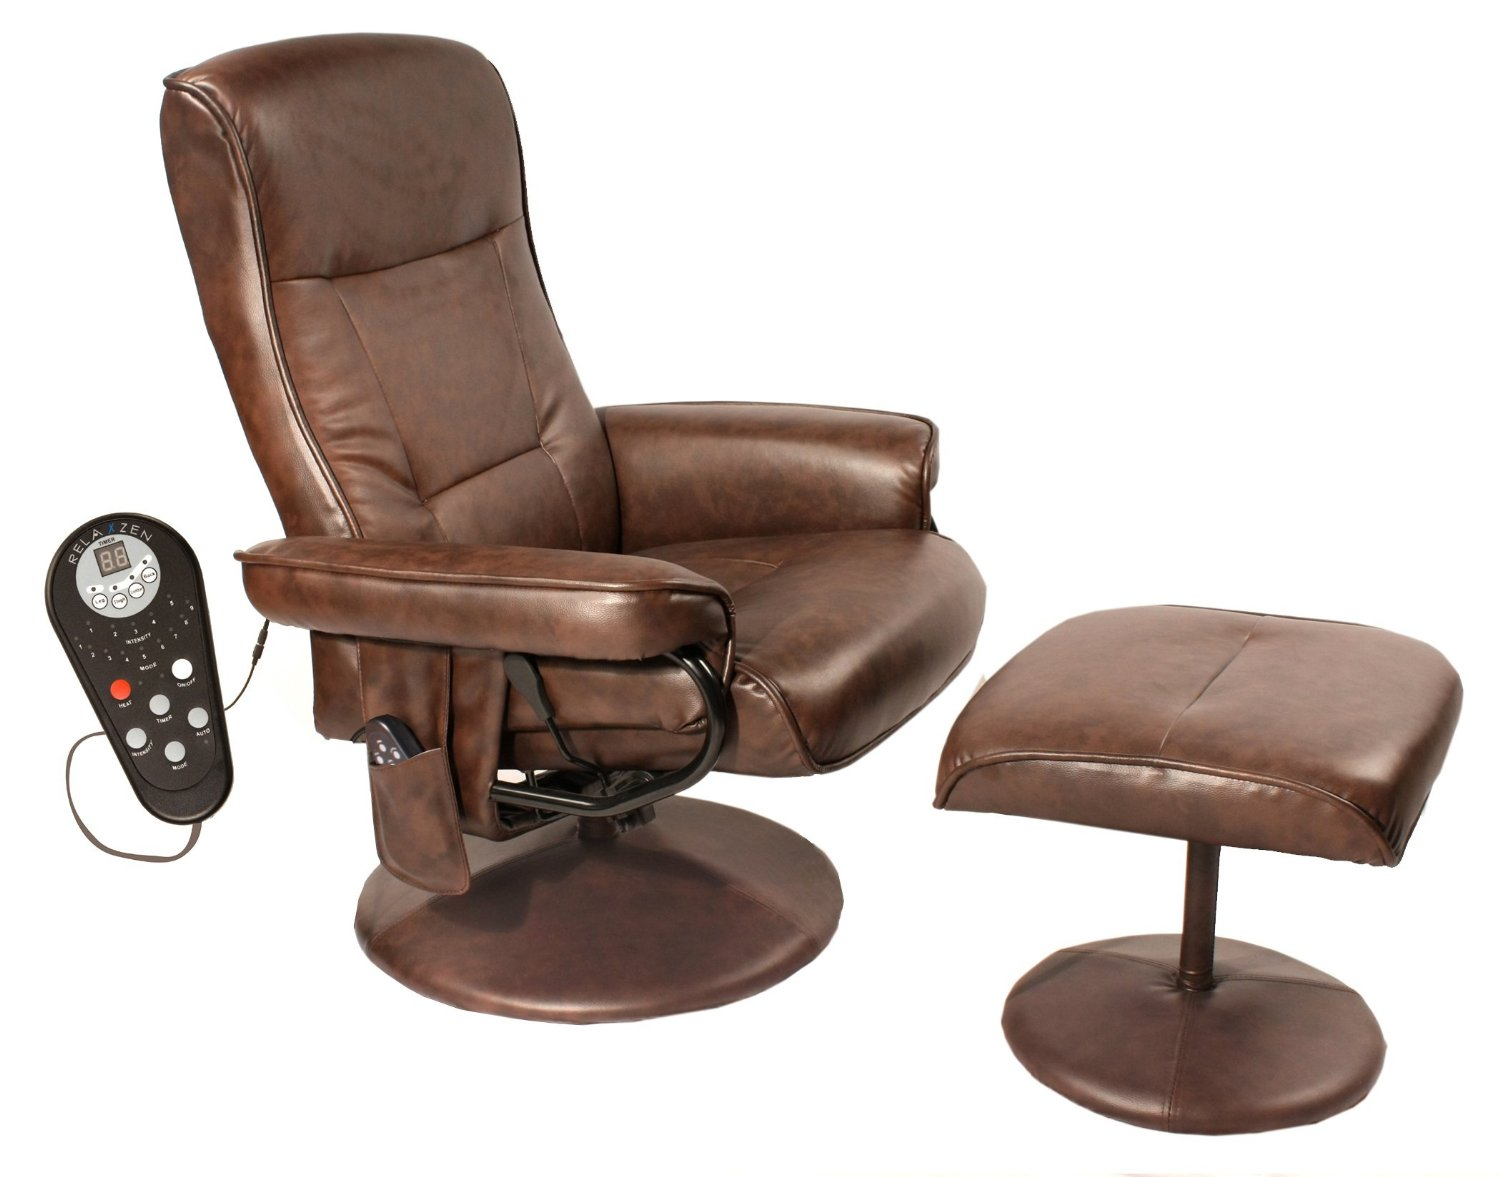 The Top Rated Recliner Brands Best Recliners